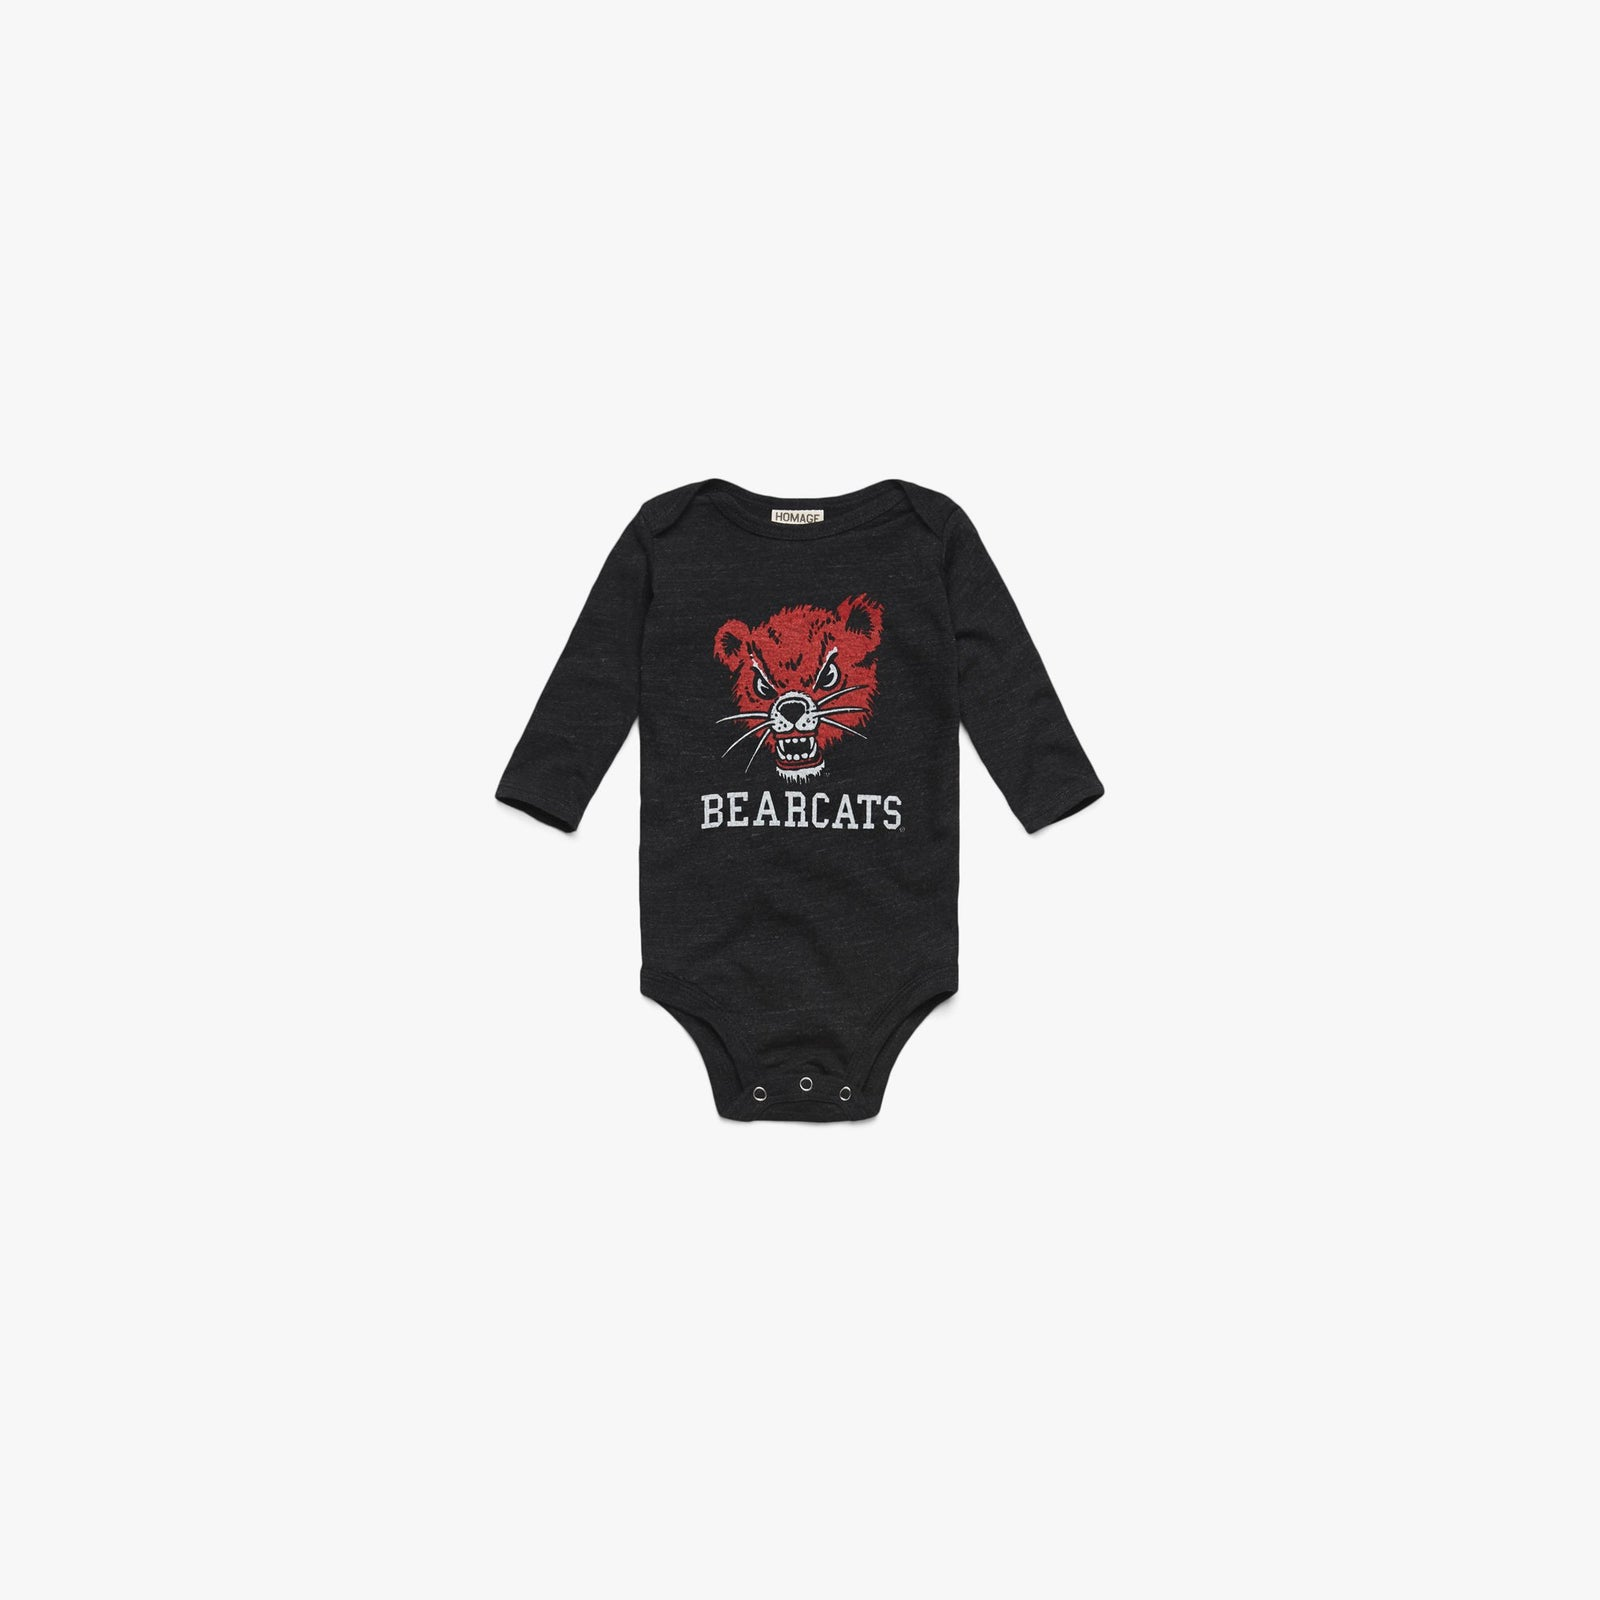 Cincy Bearcats Long Sleeve Baby One Piece